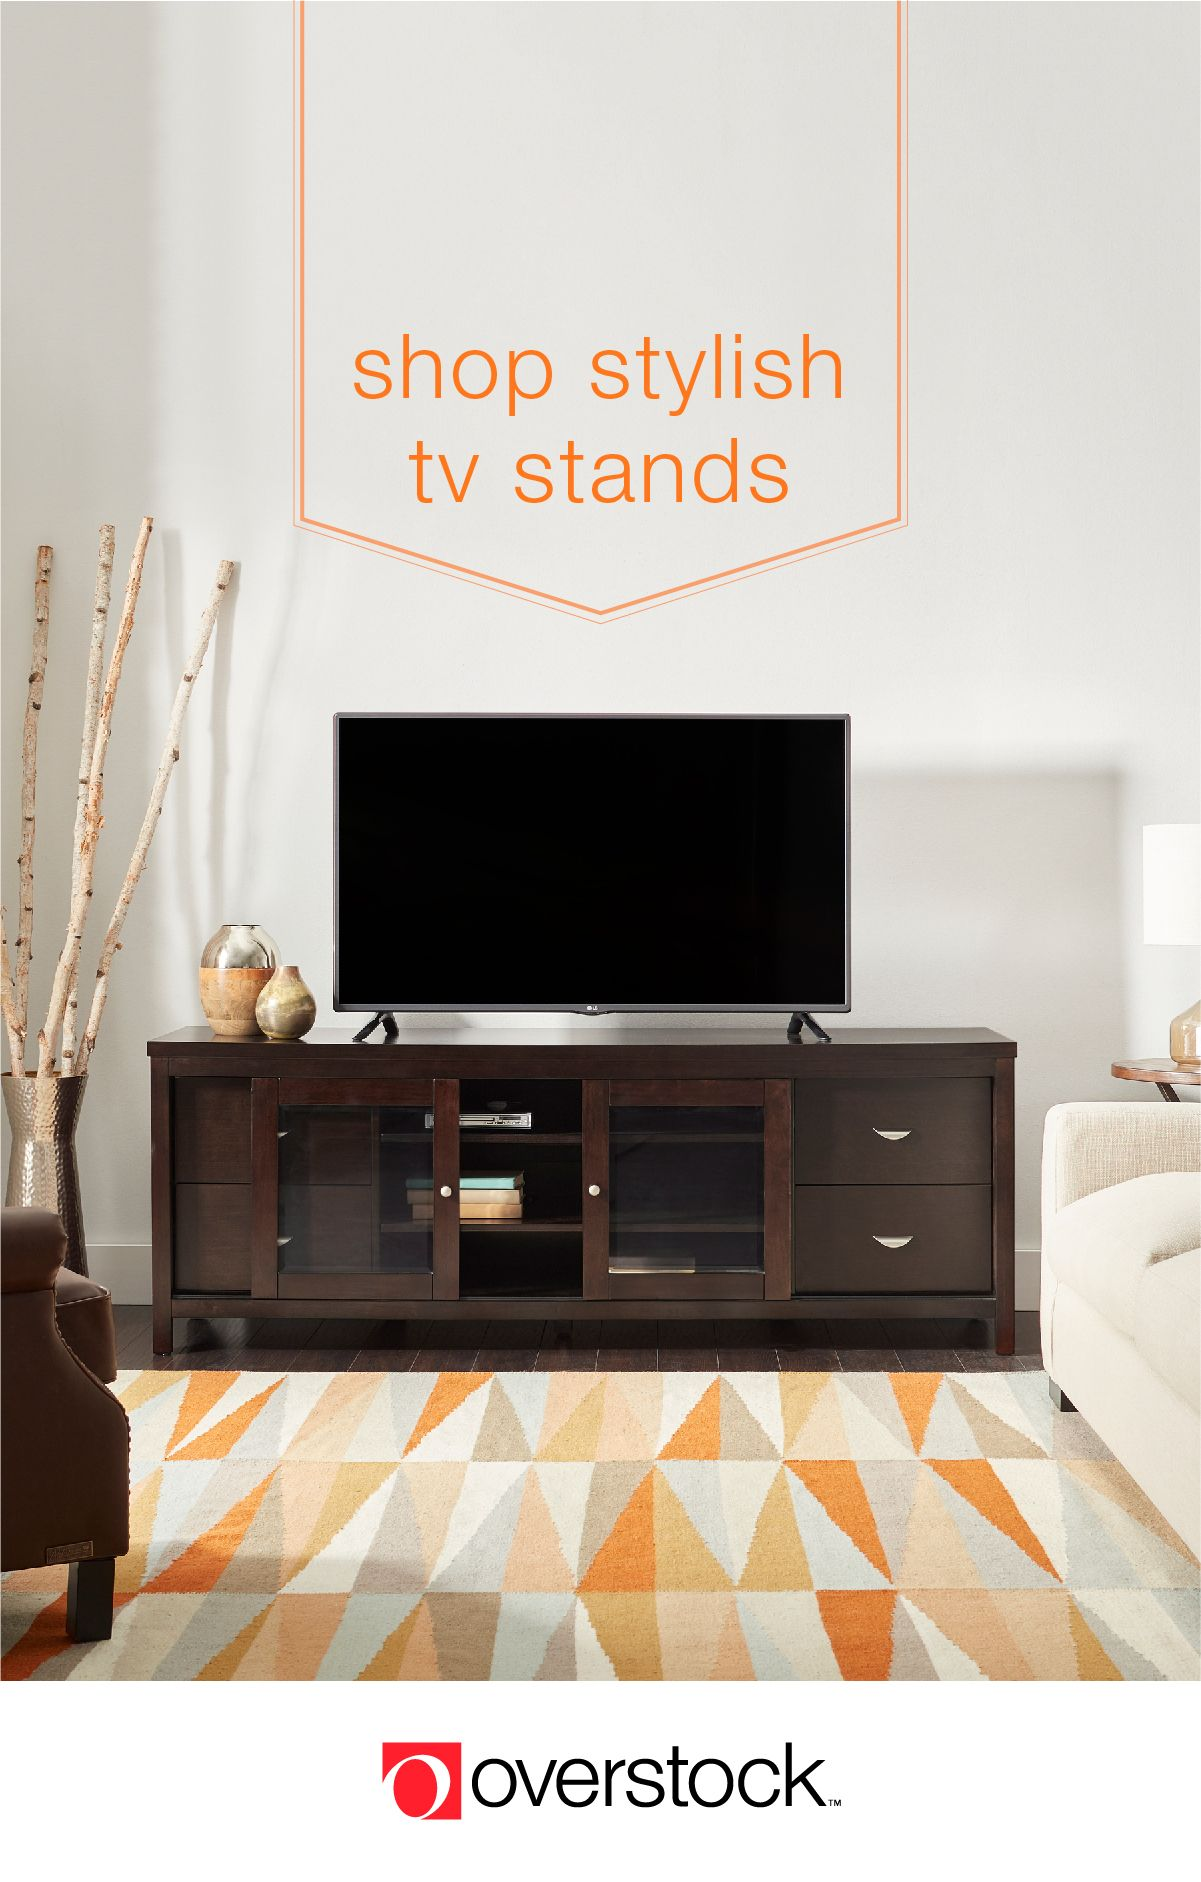 Keep Your Tv Area Looking Fresh And On Trend With An Attractive Entertainment Center That Blends Function And S Tv Stand Furniture Tv Stand Living Room Designs